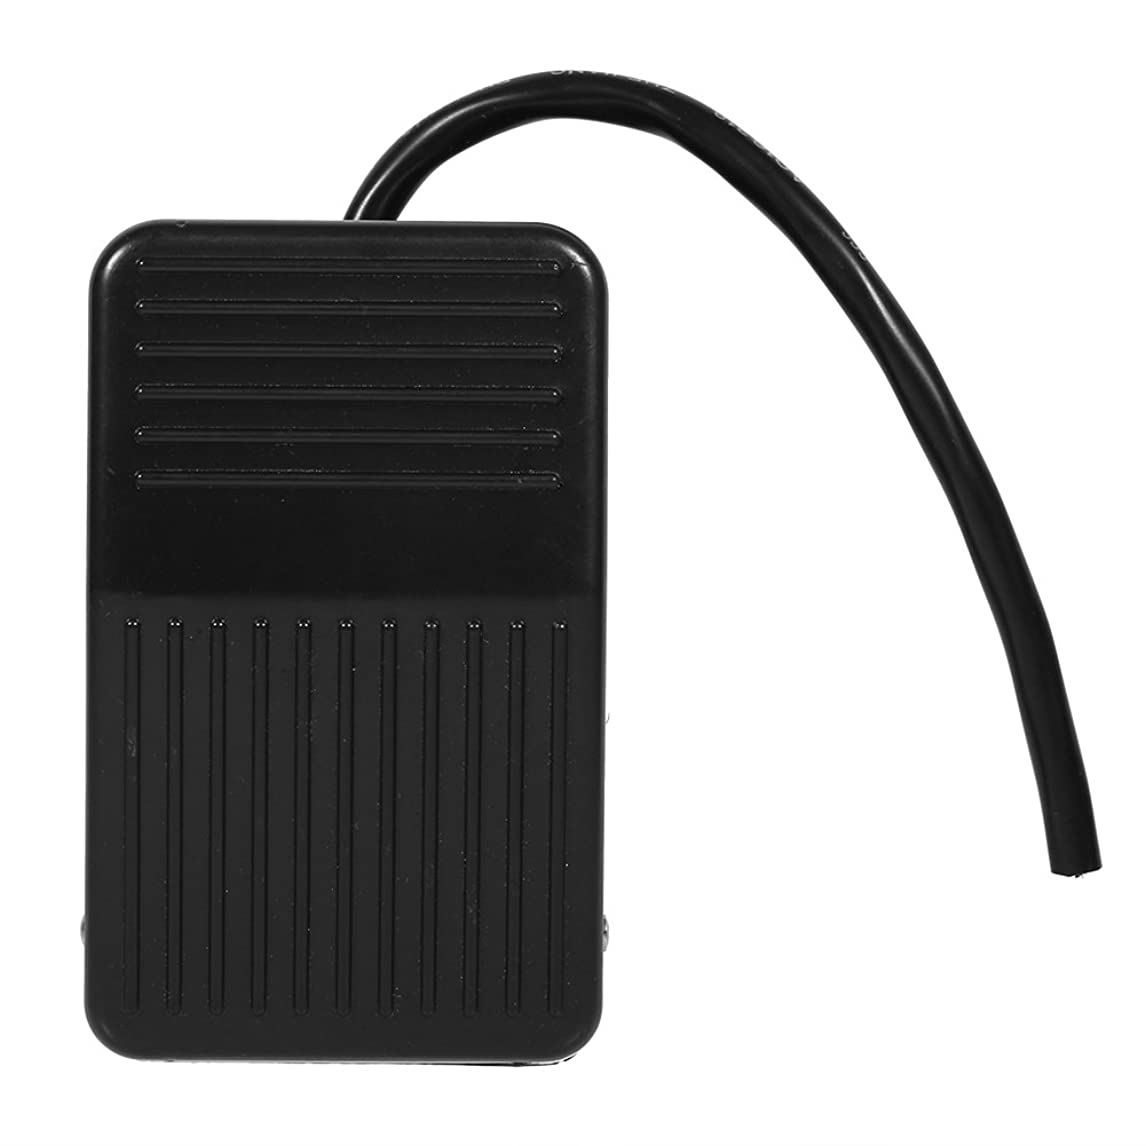 1pc 220V 10A Electrical Power Plastic Foot Pedal Switch On/Off Control Black Color + 10cm Cord qozwd79292723654